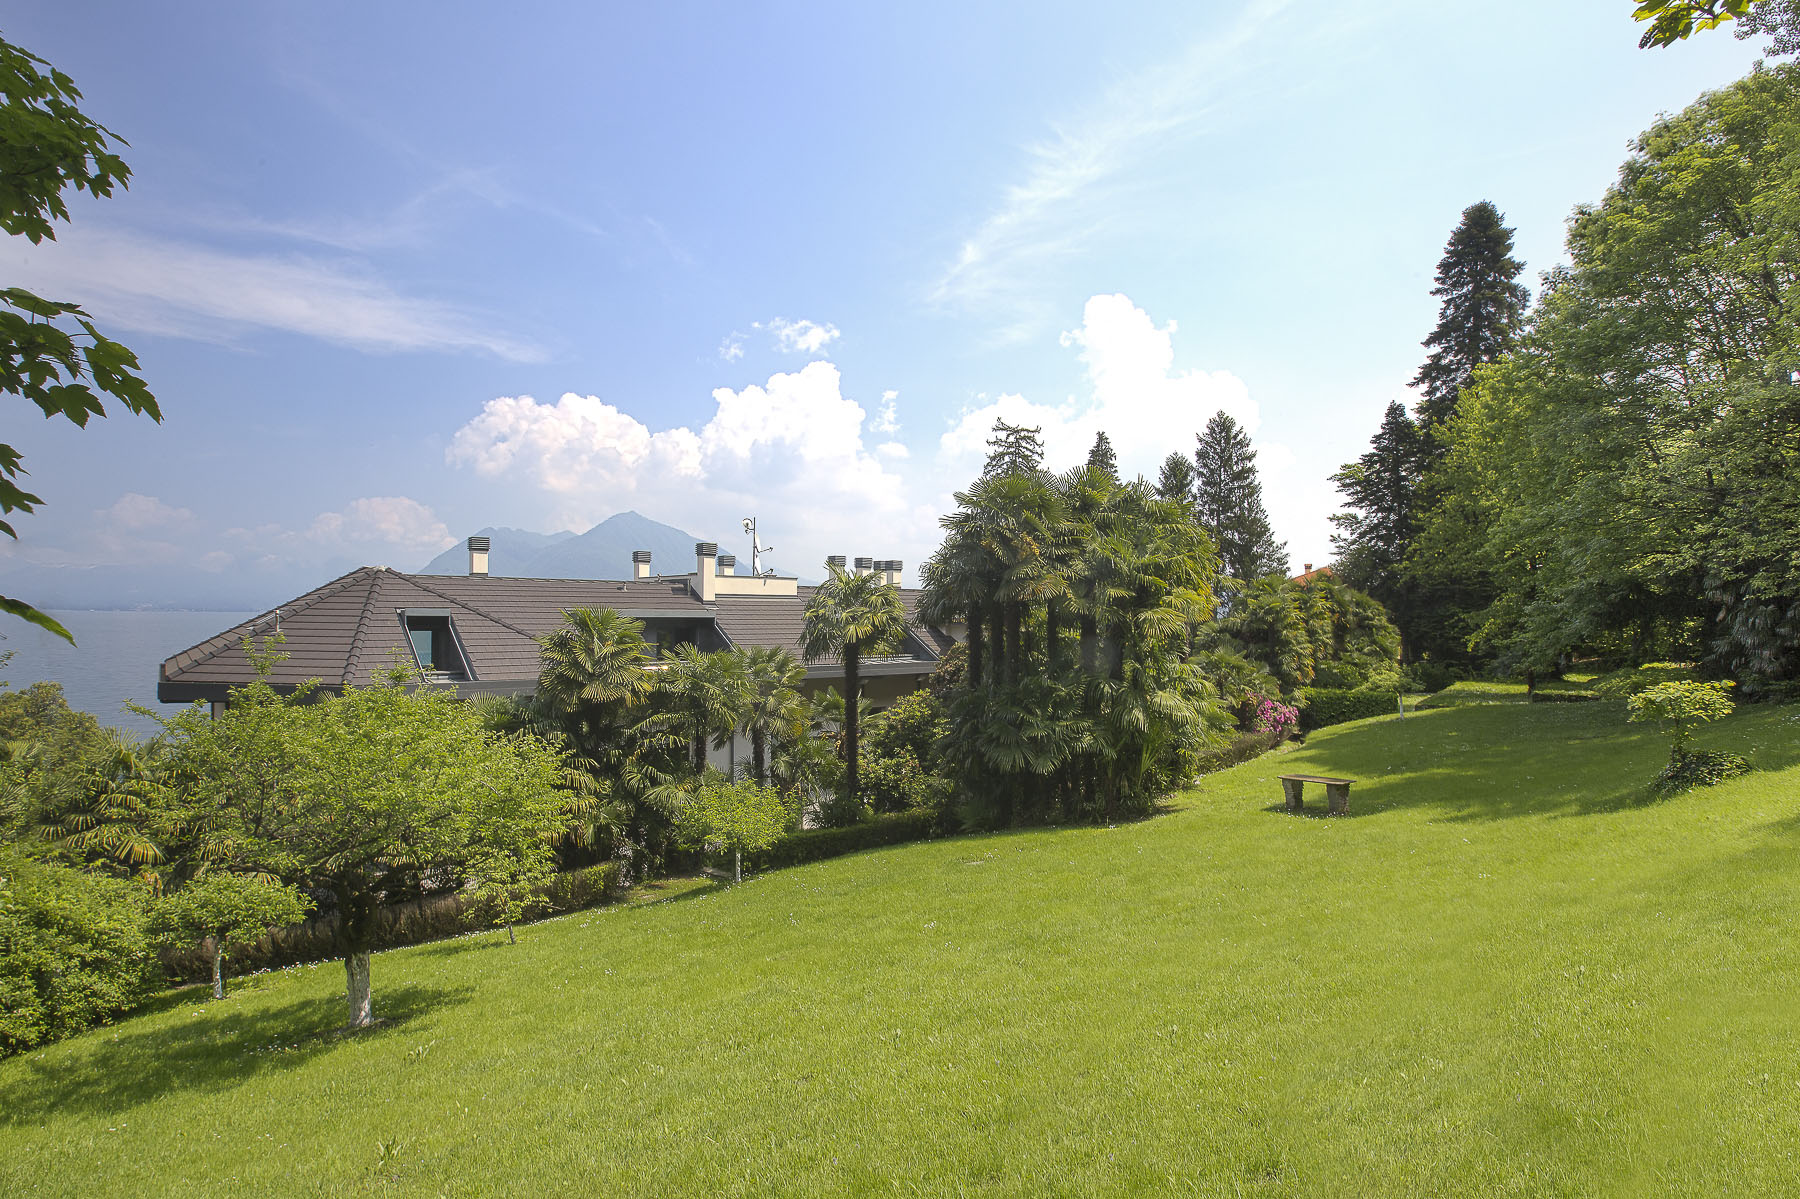 Additional photo for property listing at An alluring lakefront villa in the enchanting Stresa  Stresa, Verbano Cusio Ossola 28838 Italien